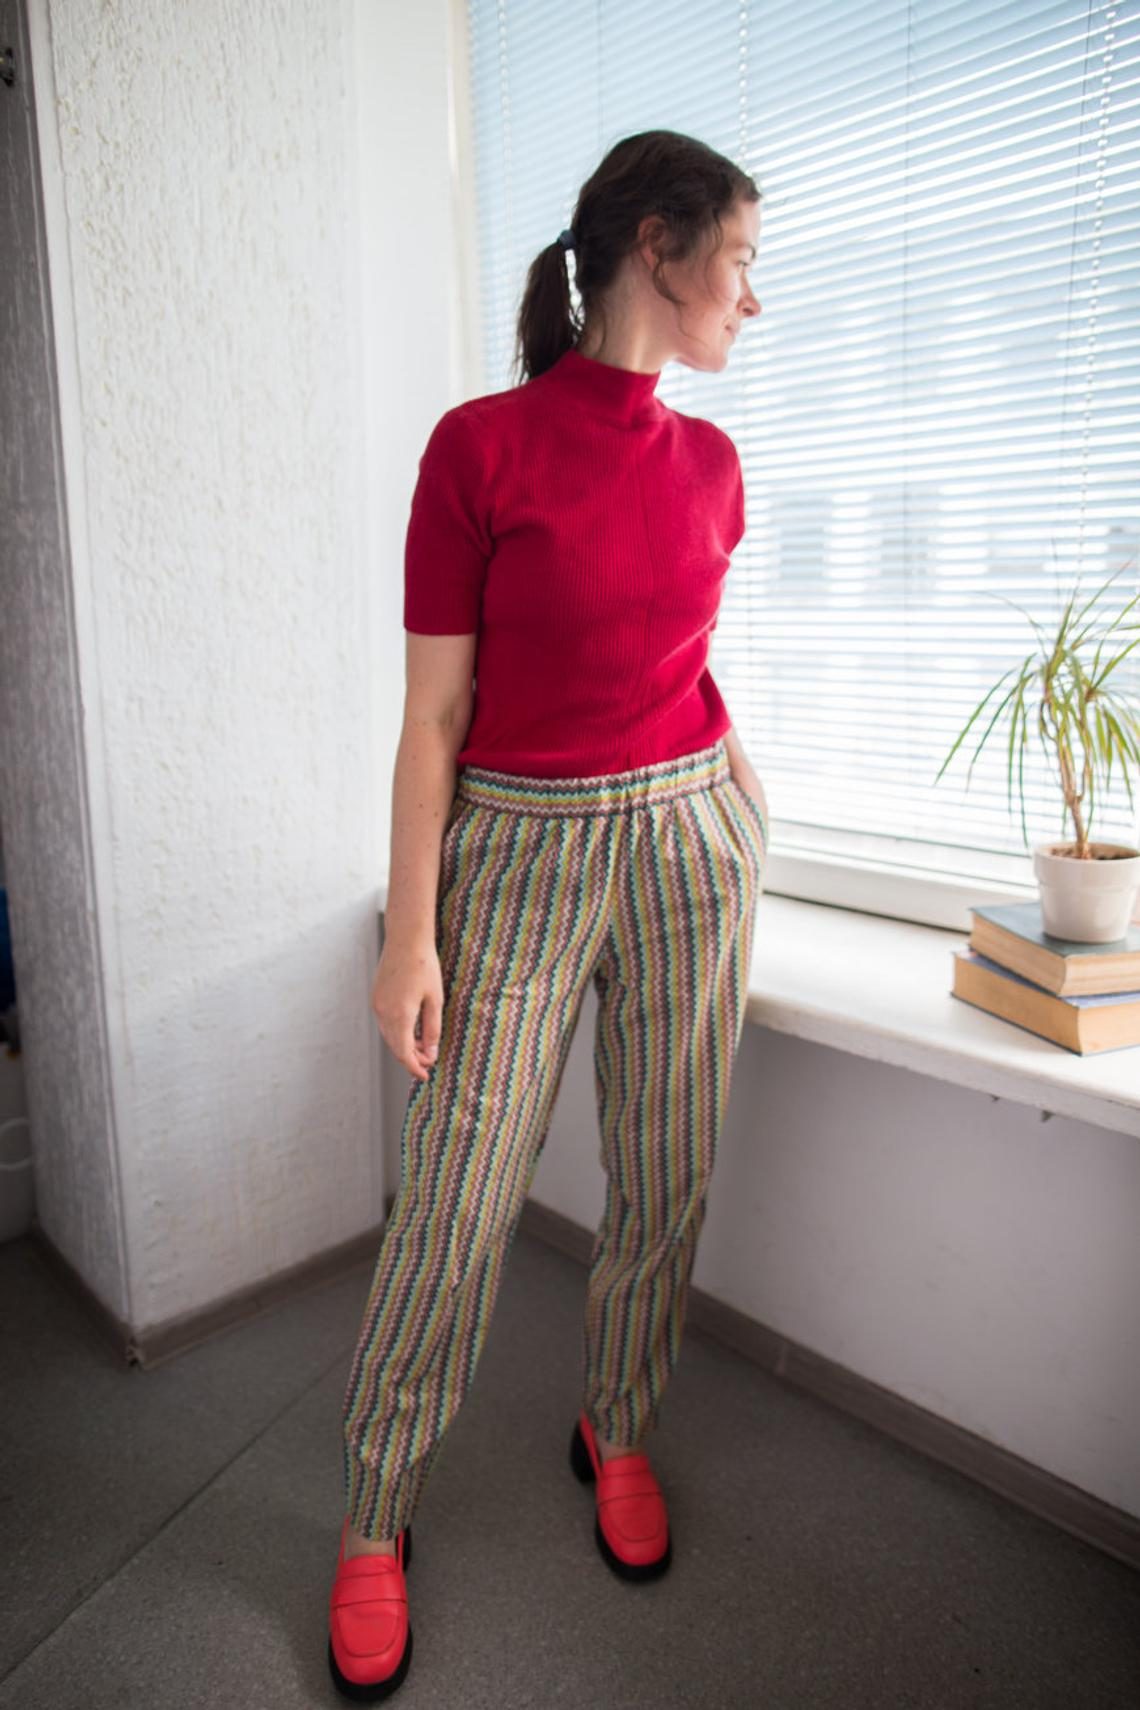 Vintage 90's Patterned Bohemian Trousers